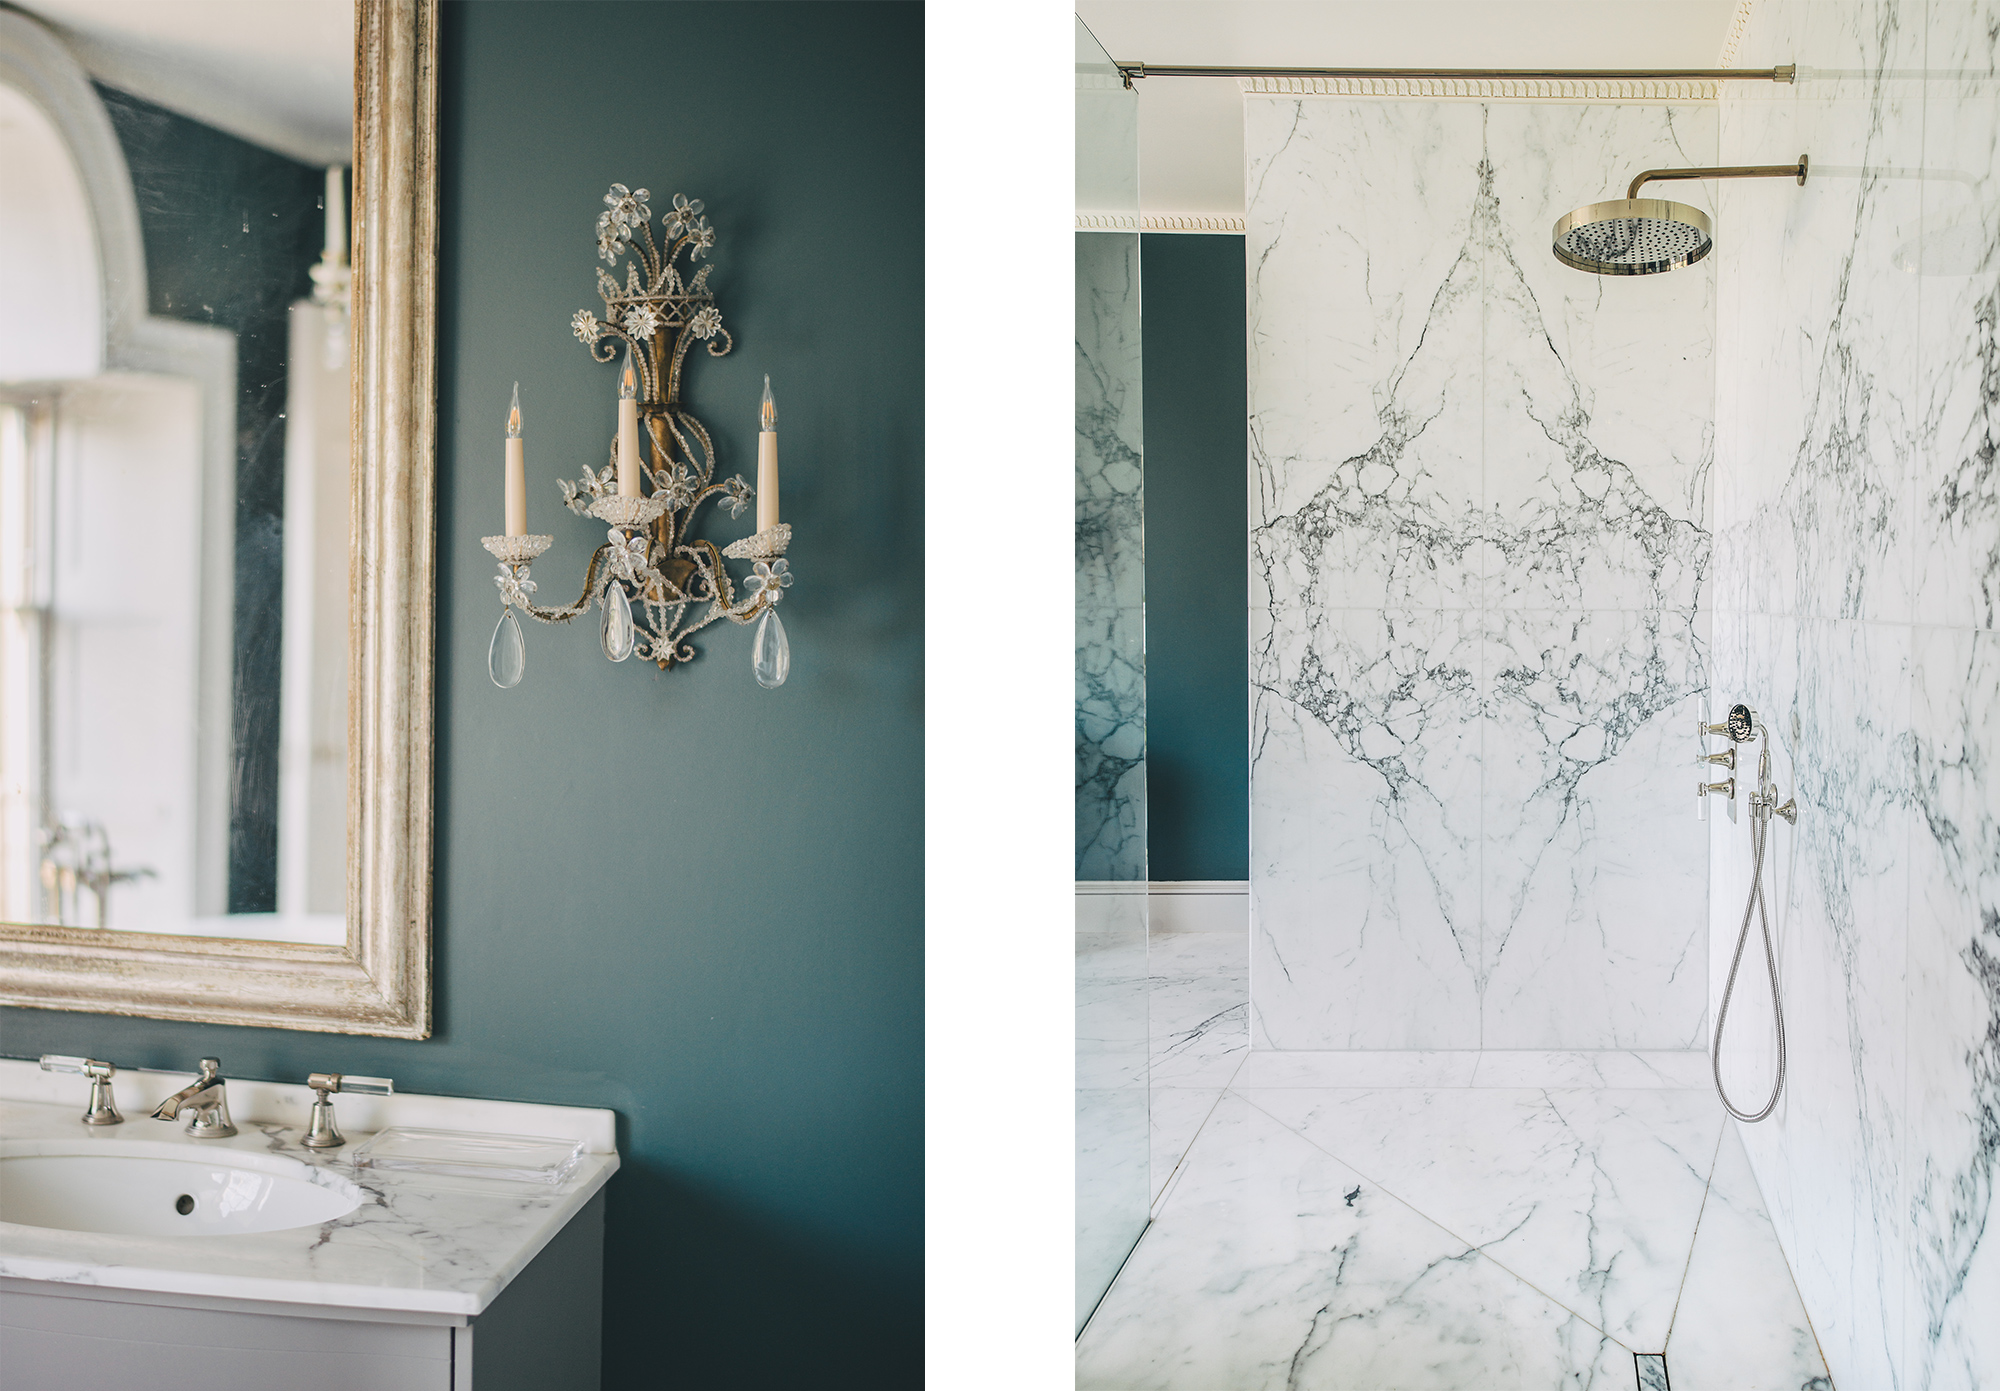 The white marble of the Templeton House/the decor.